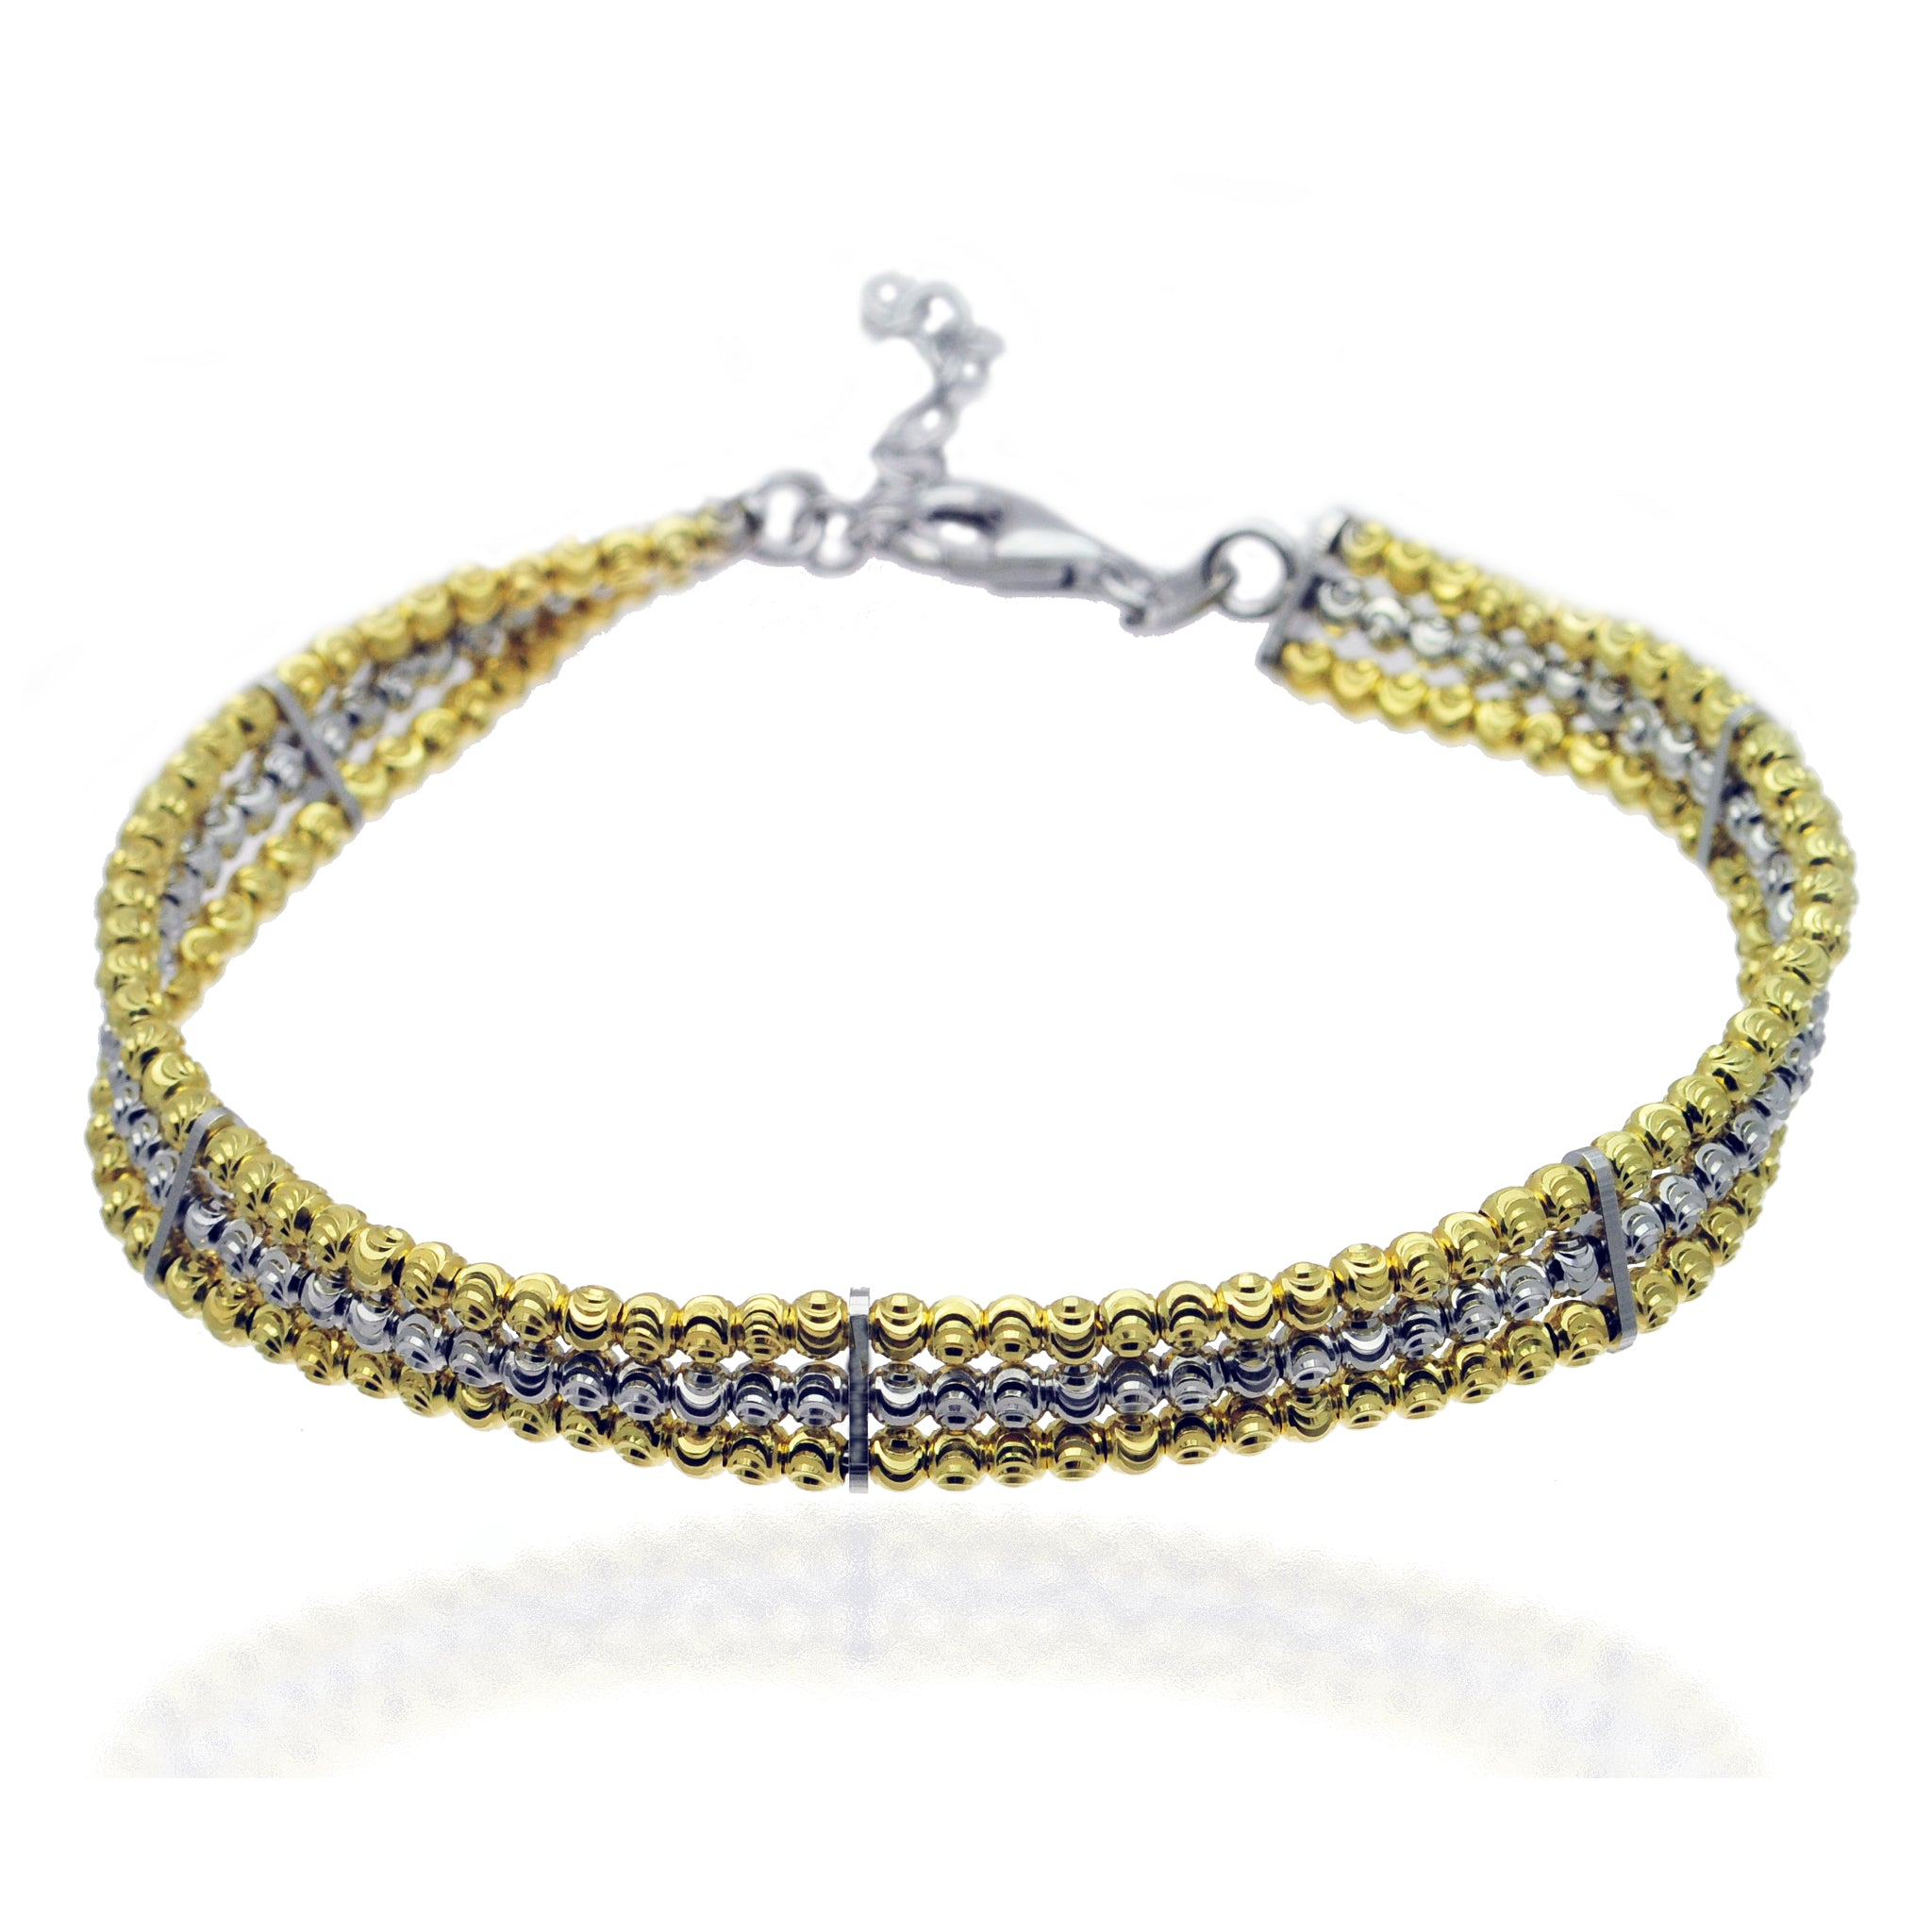 Silver and Gold Triple Row Bracelet